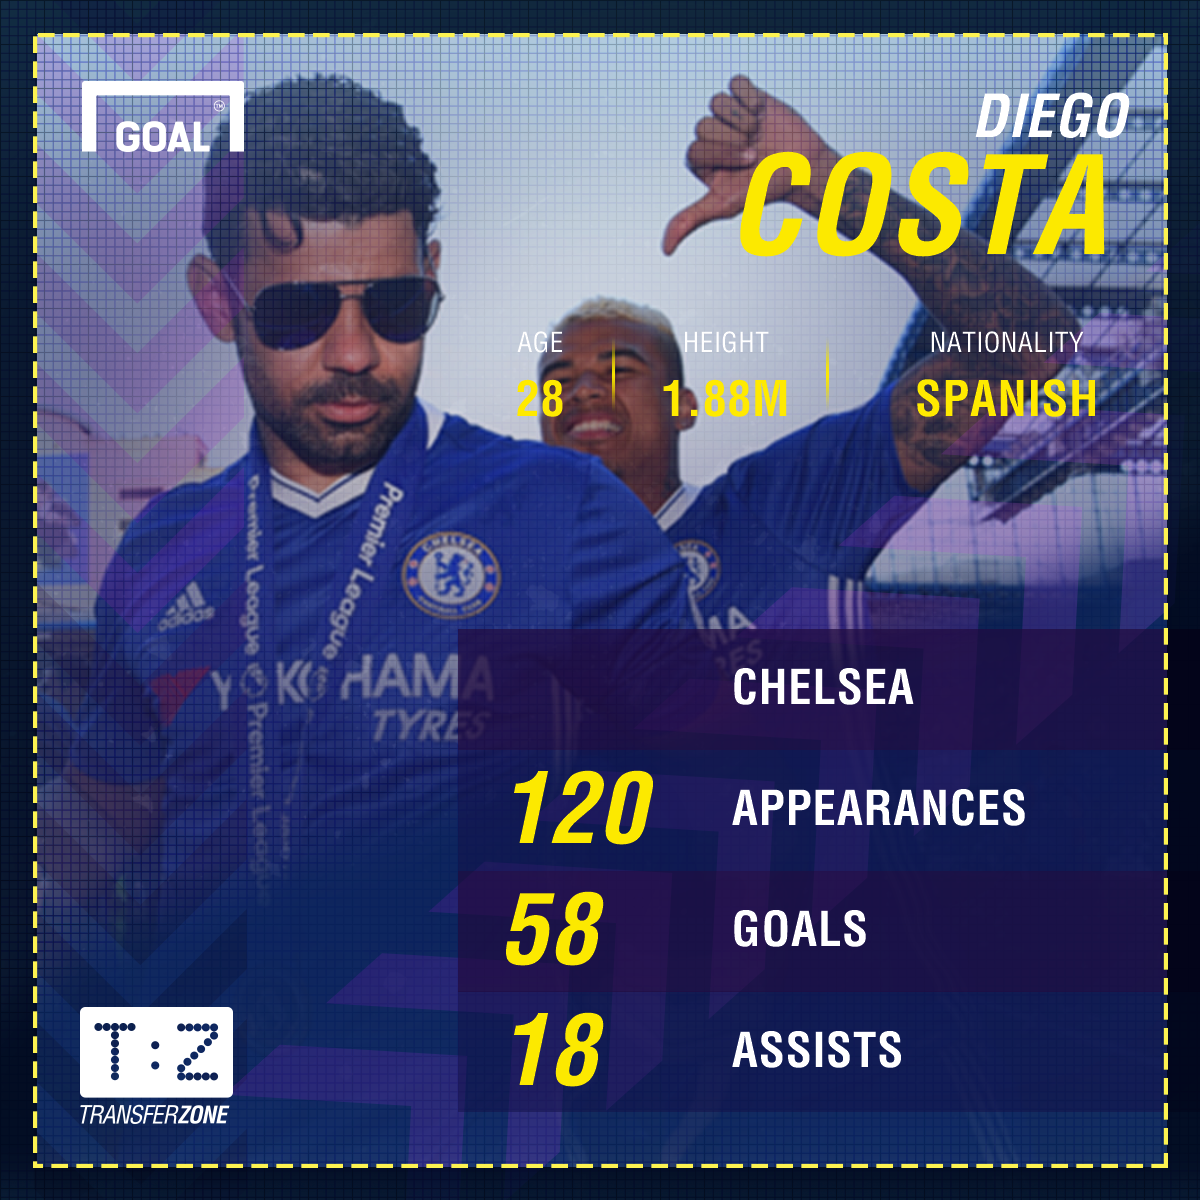 Chelsea clear out Diego Costa's locker with Blues striker still AWOL